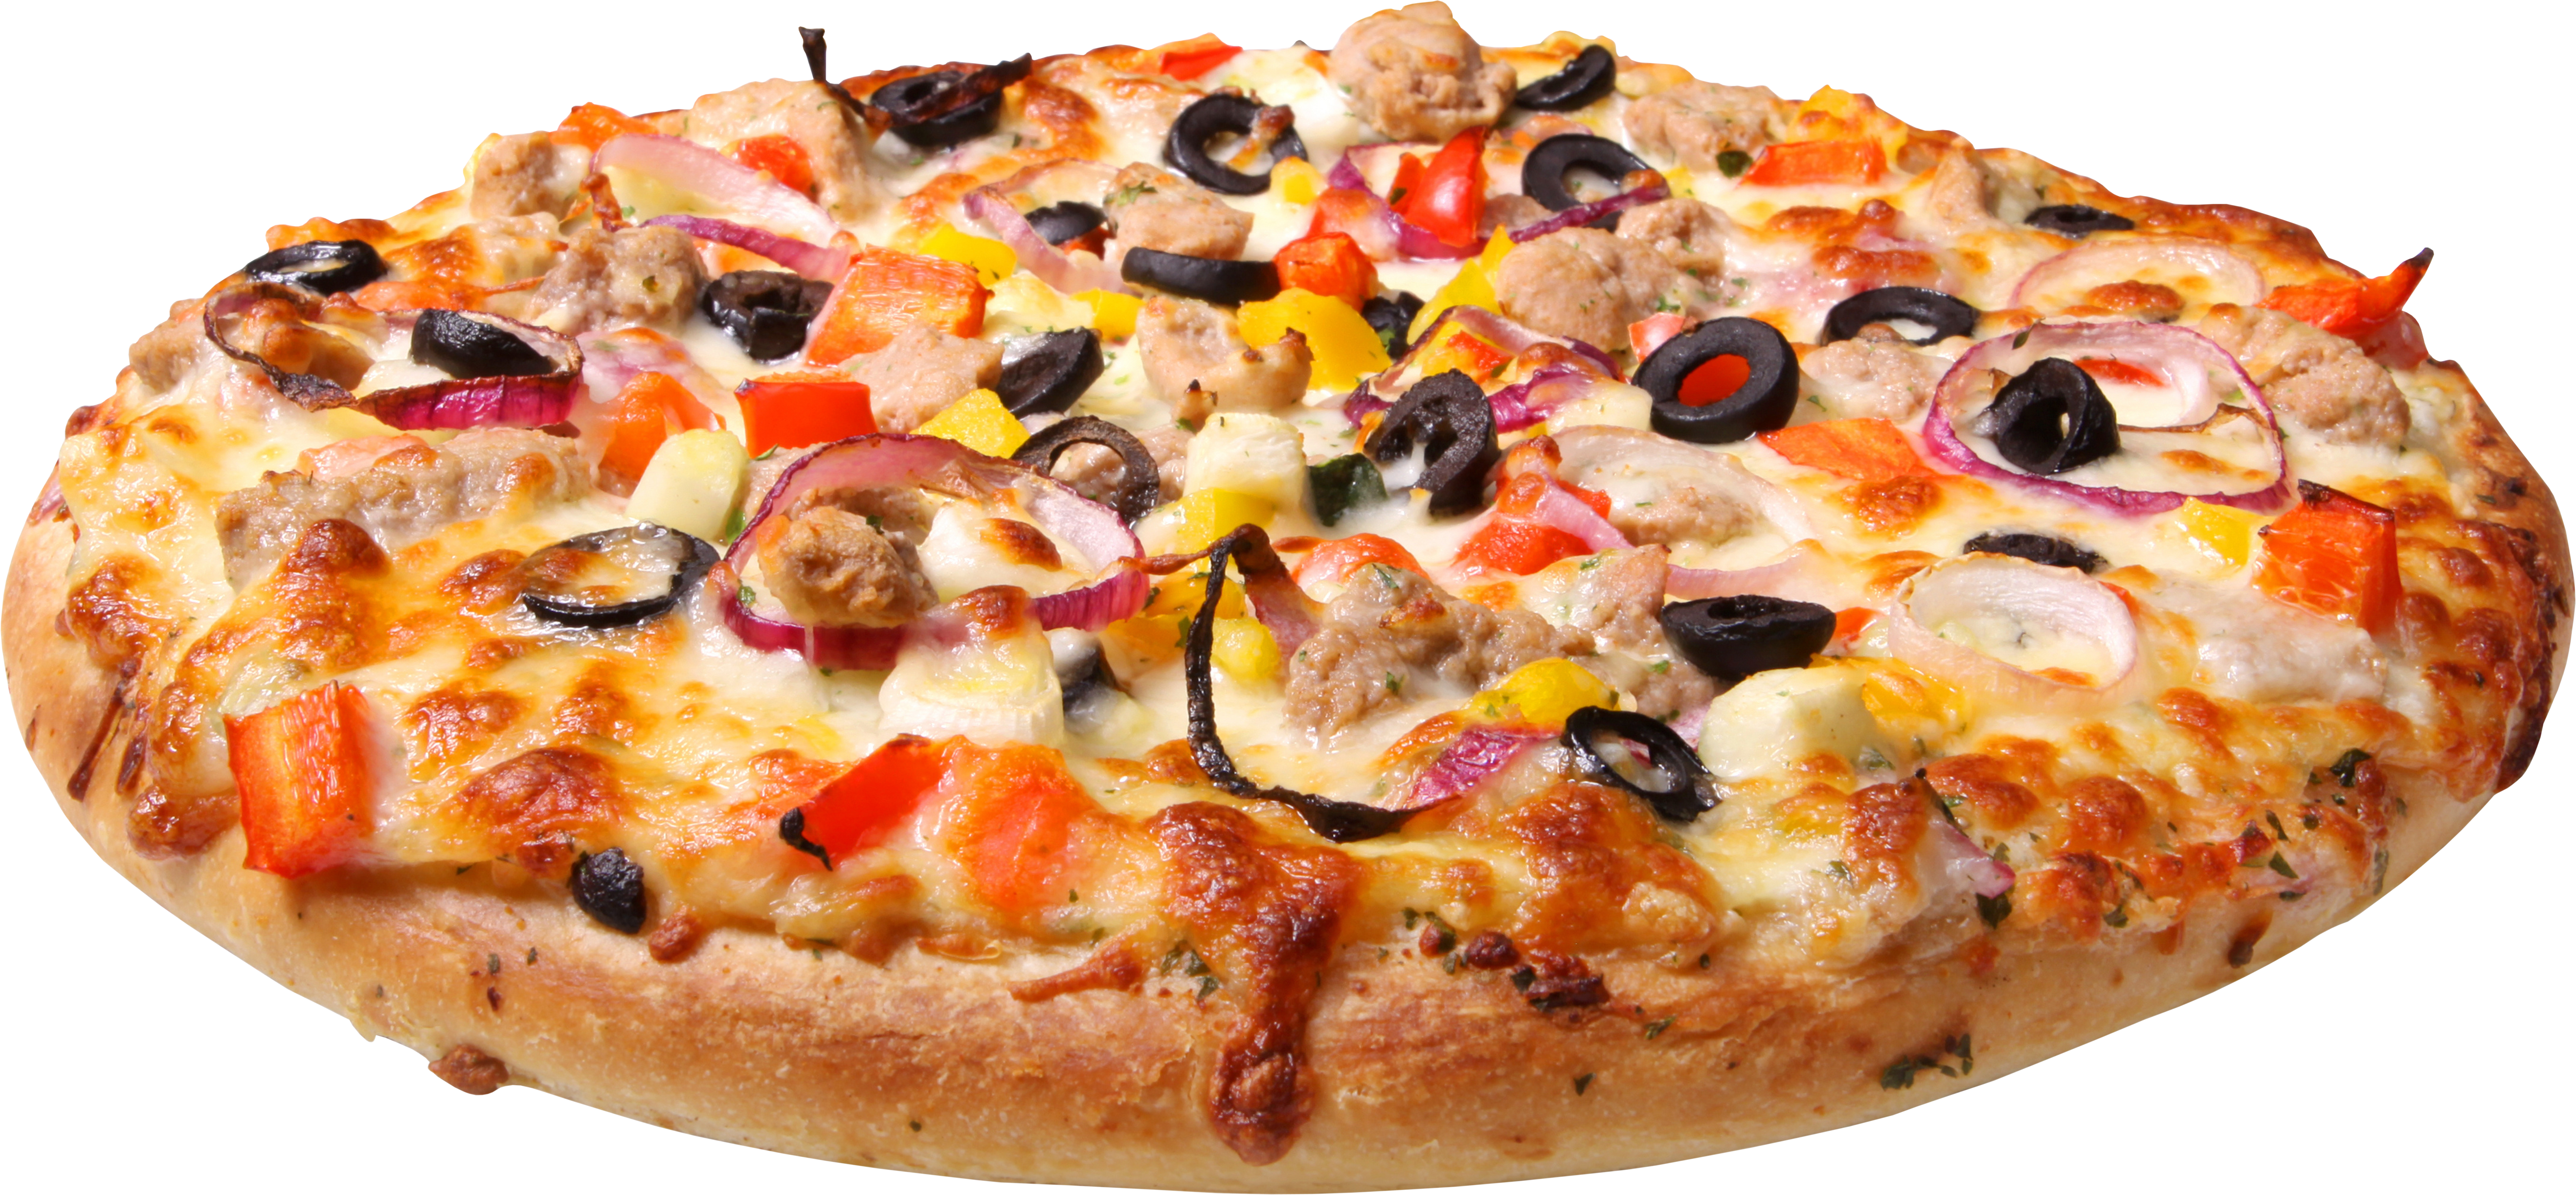 Square pizza clipart freeuse stock Pizza PNG images free download, pizza PNG freeuse stock